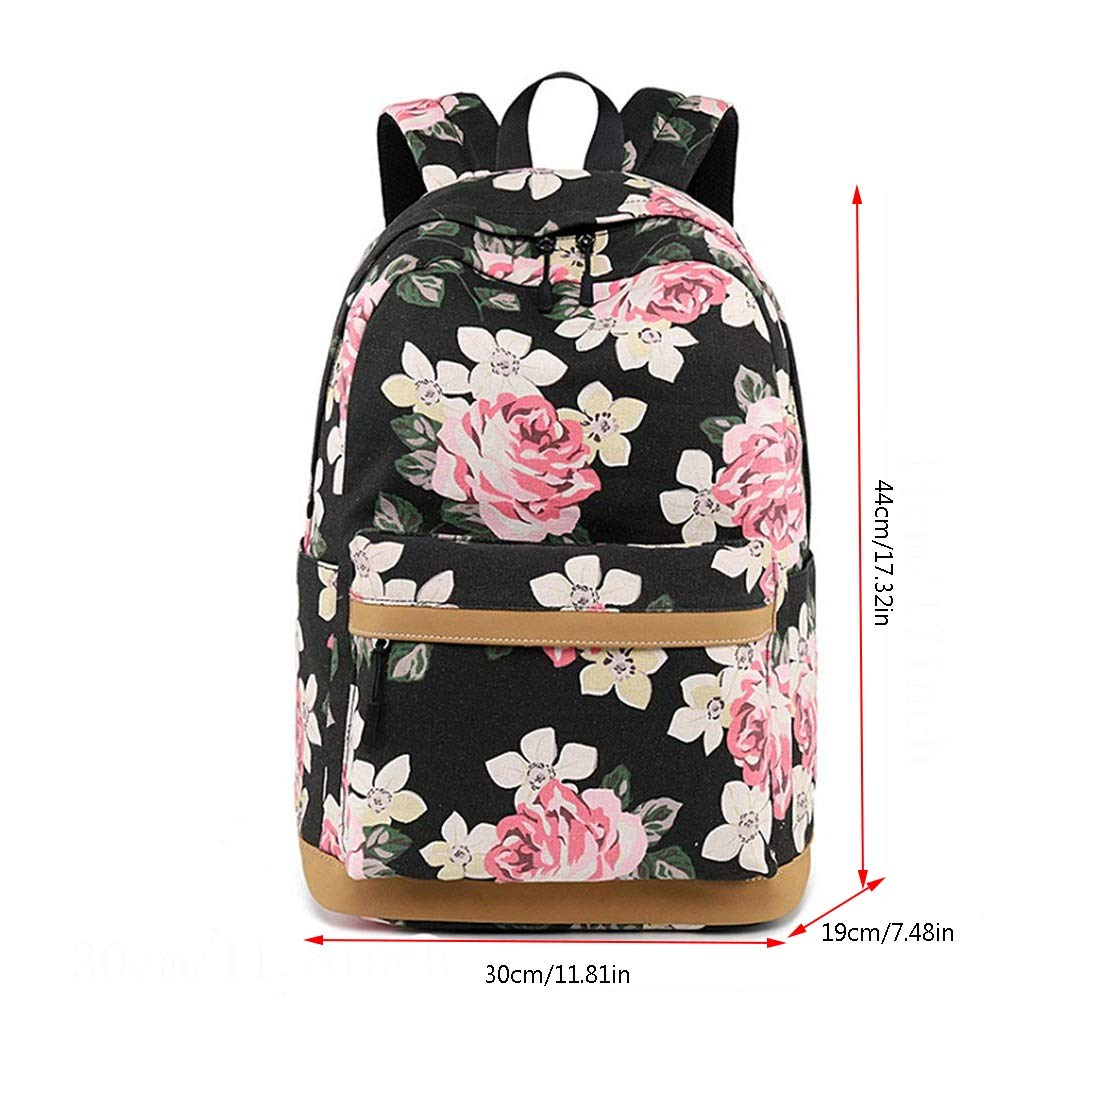 multifunctional Nosterappou Outdoor scratch-resistant cloth anti-fouling and easy to clean more wear-resistant casual personality printing shoulder large-capacity travel bag back breathable design